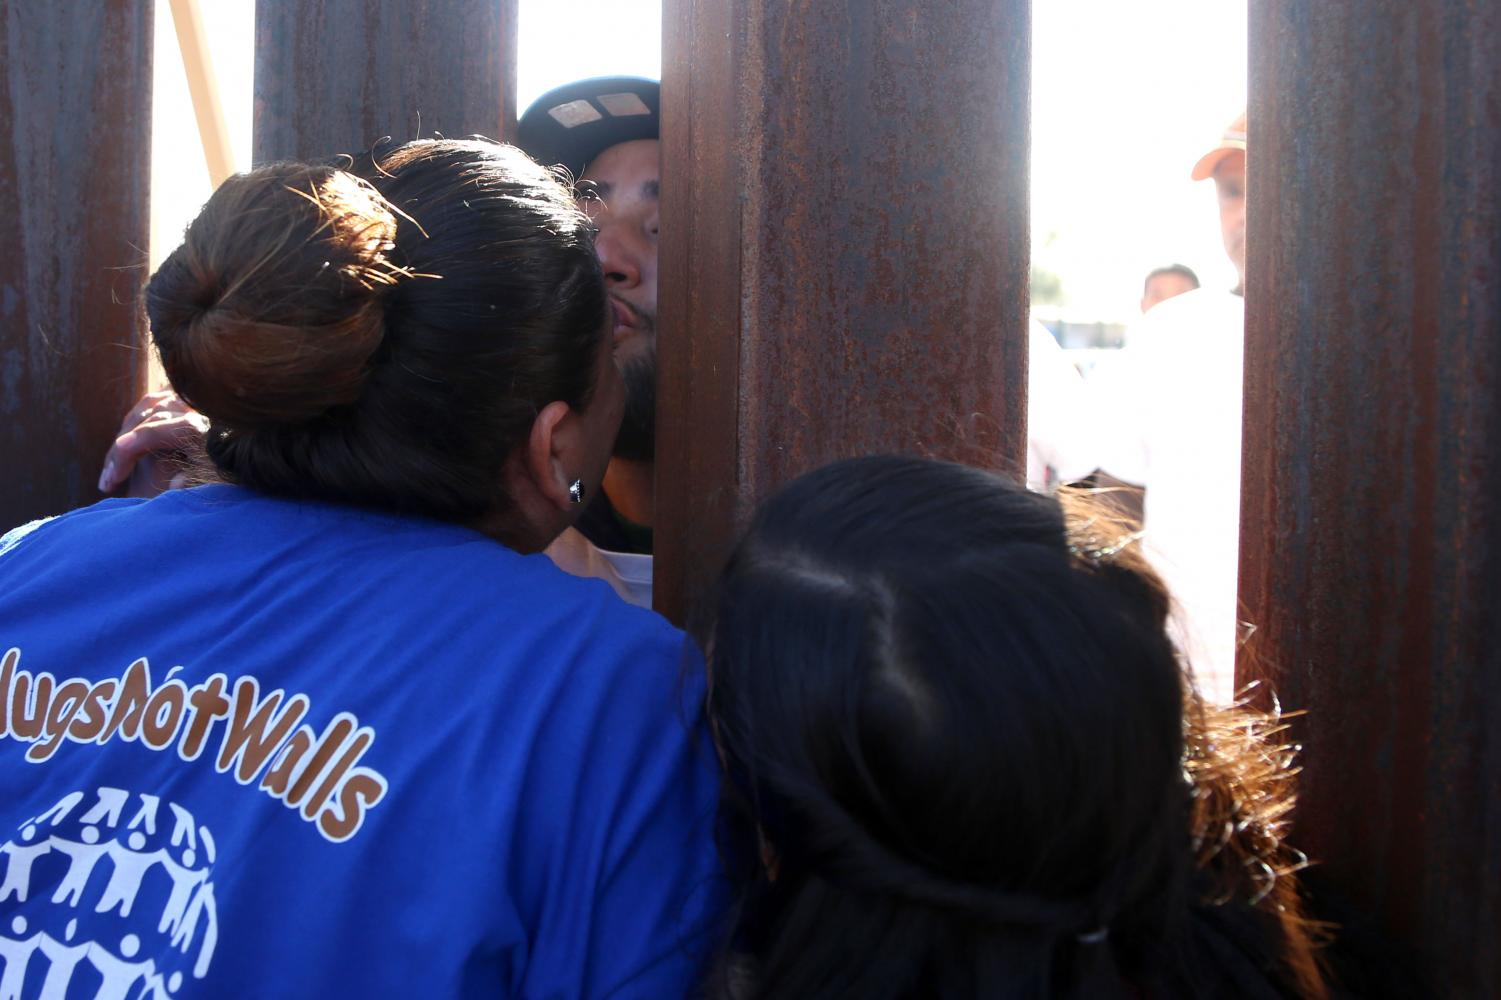 The+families+tried+to+embrace+each+other+as+best+as+they+could+across+the+fence.